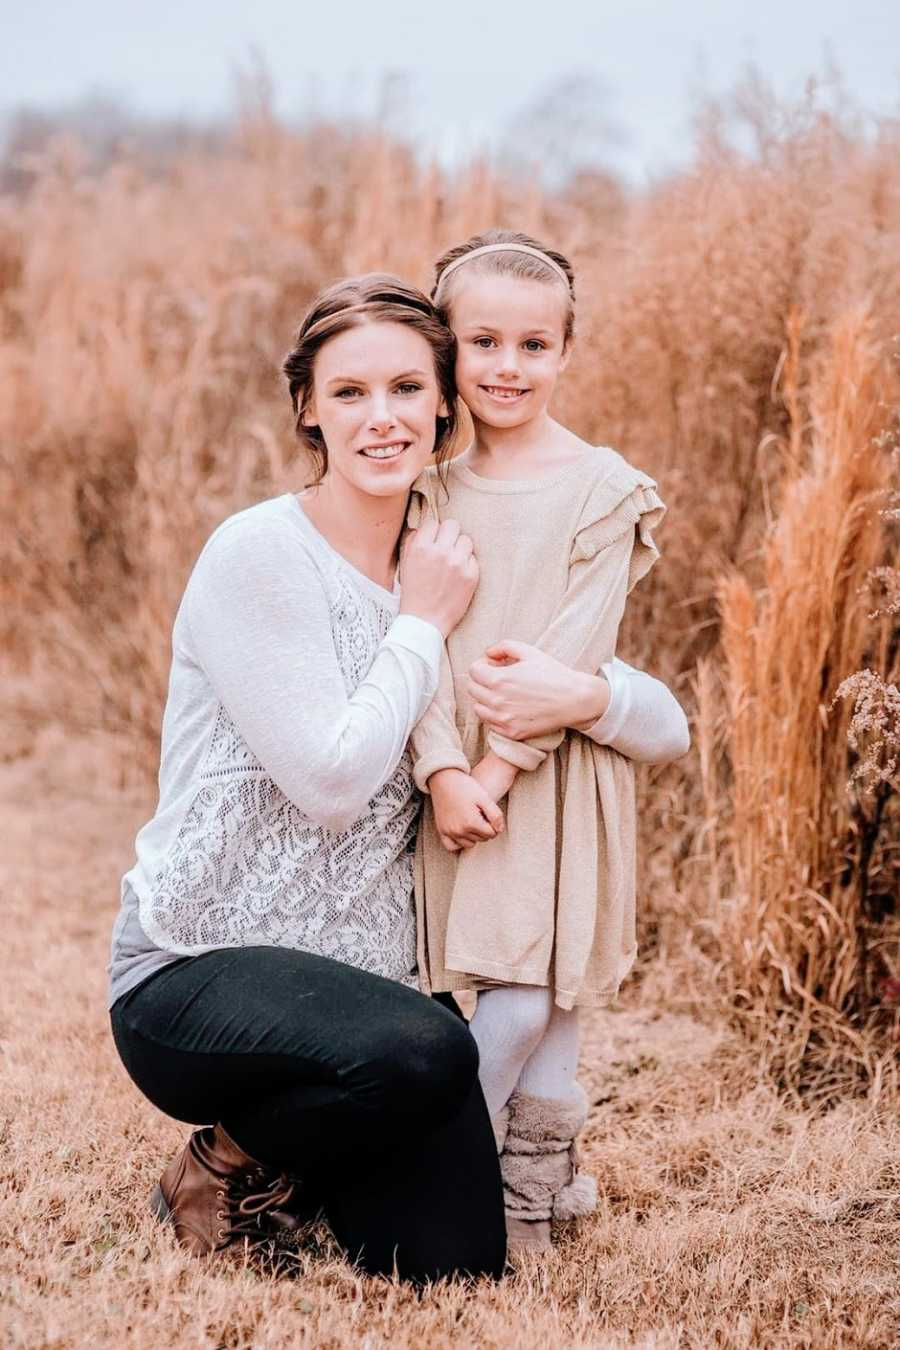 A mom and her daughter stand together in a field